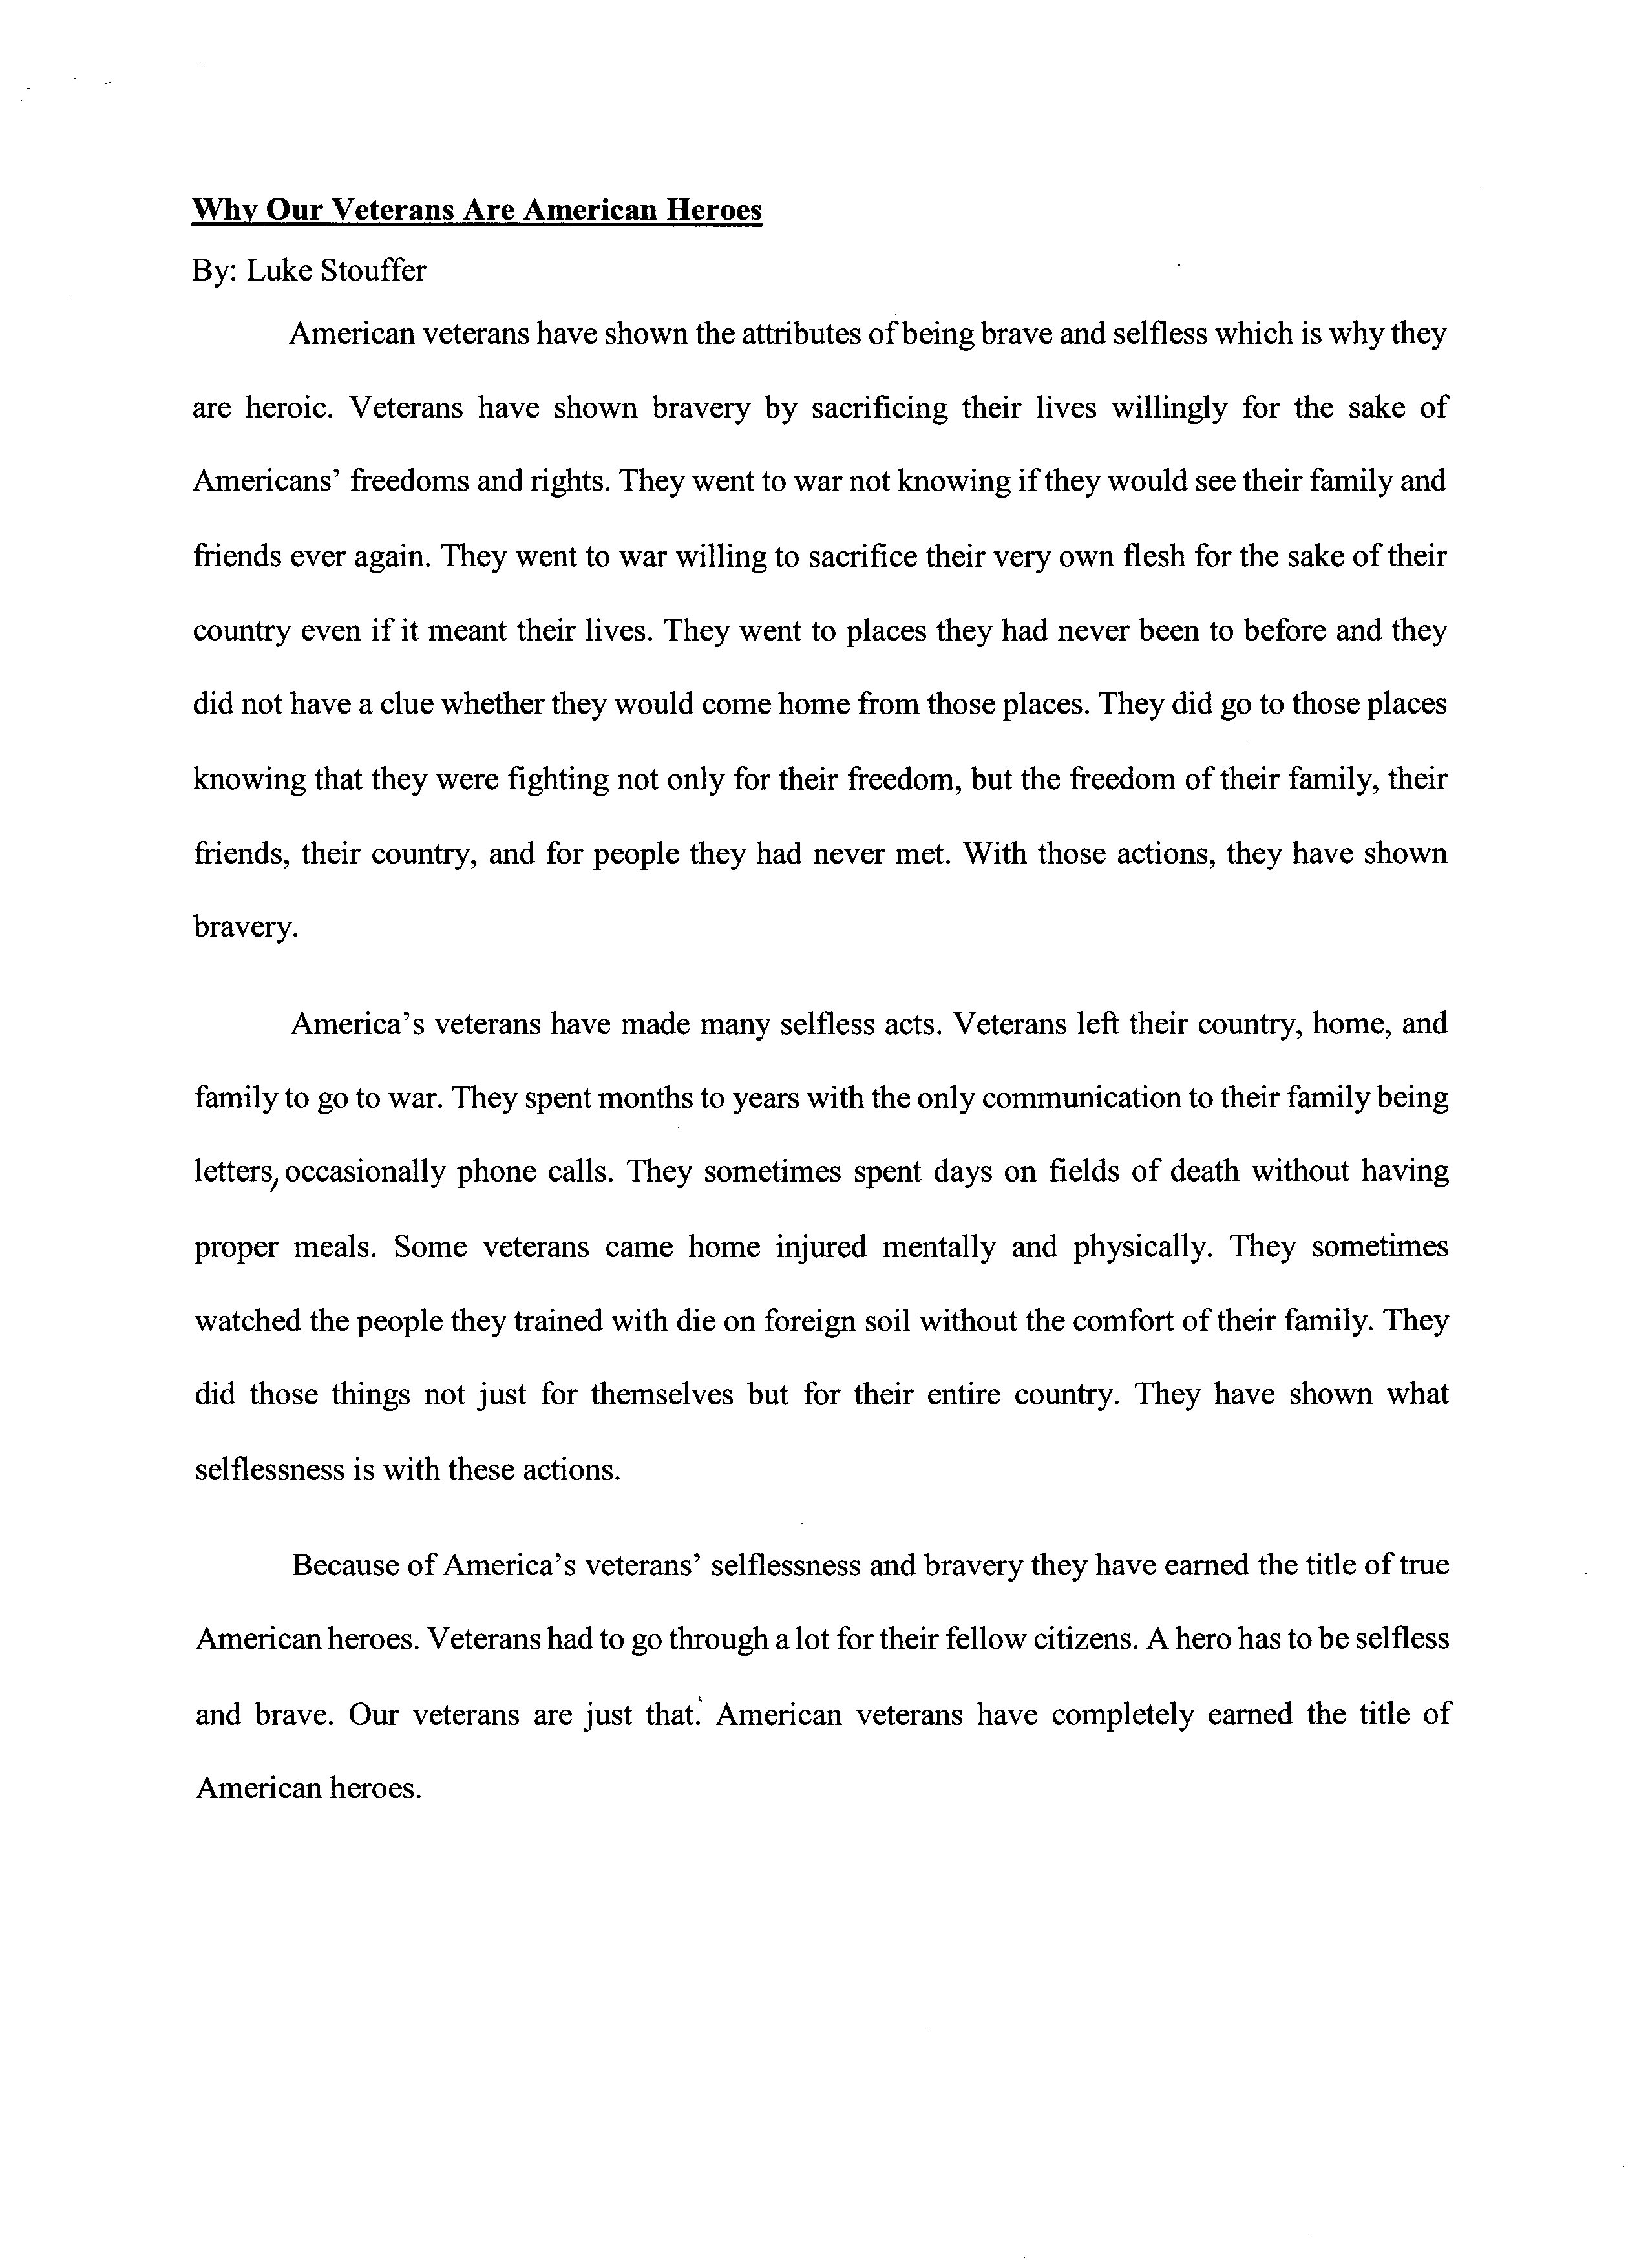 Term Papers And Essays Download Lukes Winning Essay Here Controversial Essay Topics For Research Paper also Thesis Statement For Definition Essay Americanism  Ohio Elks Association Thesis Statement Examples For Persuasive Essays